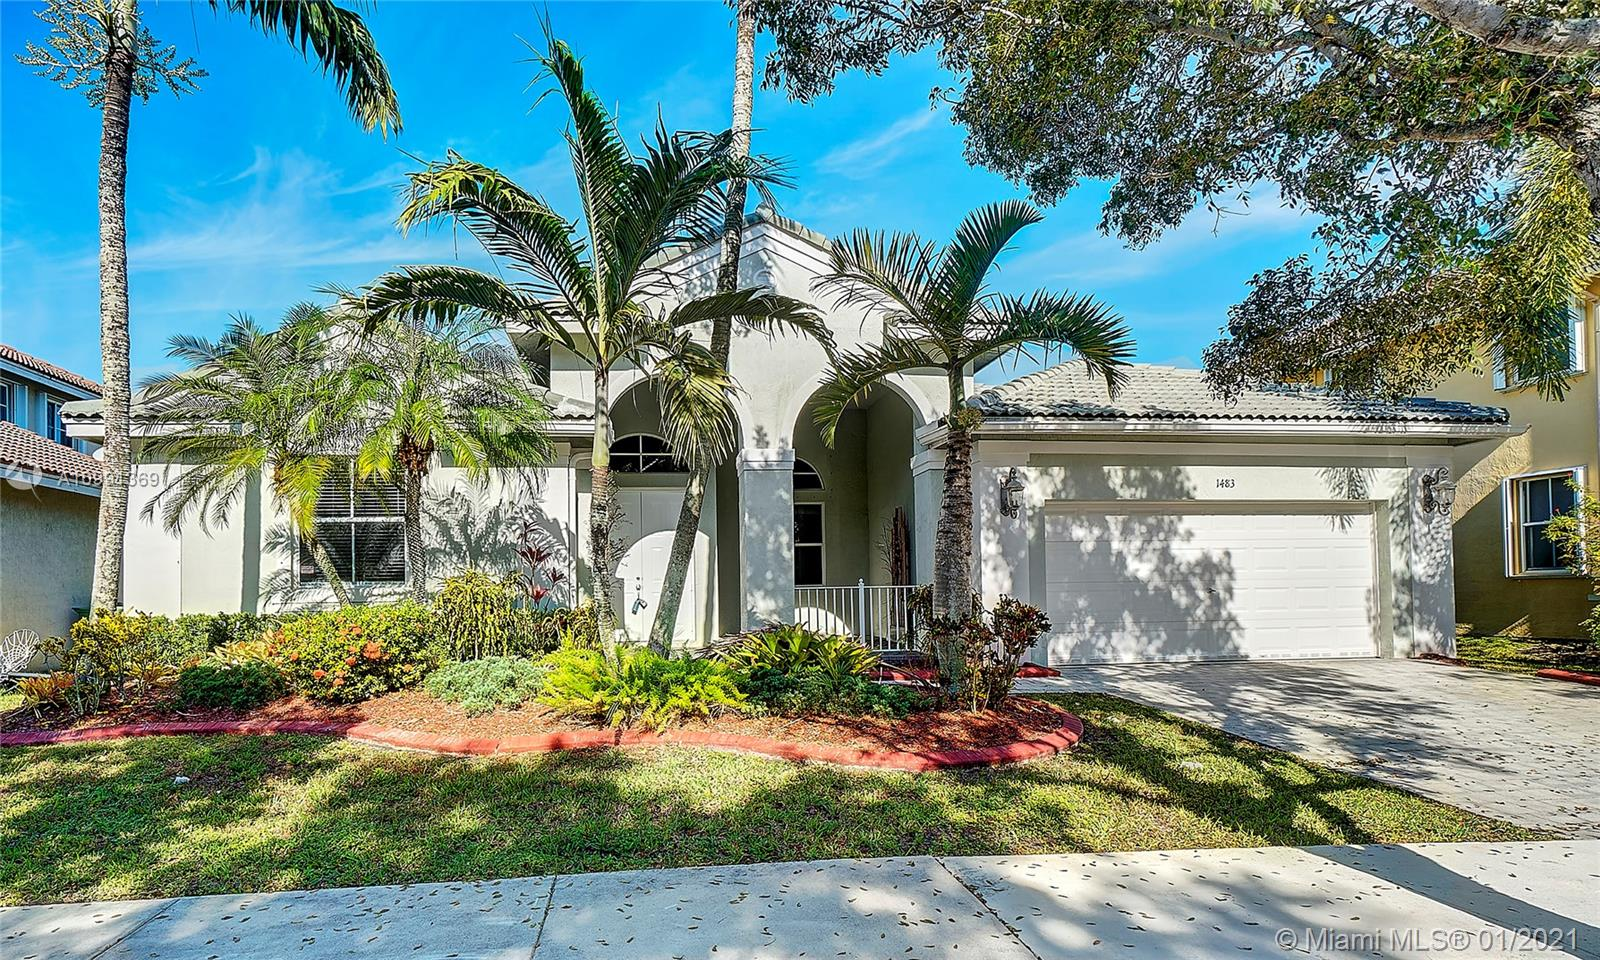 Beautiful Heron model single story, 4 Bedroom, 3.5 Bathroom, Den/Study with 2 Car Garage residence located in the very well sought after gated community of Savanna in the City of Weston. Interior features: travertine marble floors throughout main living area, wood floors in master bedroom & den/study. Kitchen features include: all real maple wood cabinets with glass insert doors, under-mount lighting, black granite counter tops with designer glass backsplash & all stainless steel GE Profile appliances. The French doors located in the living room & family room lead you to your very own private screened in patio. Exterior features: paver driveway, private porch and hurricane shutters throughout. Savanna is an excellent family oriented community with outstanding amenities and schools.